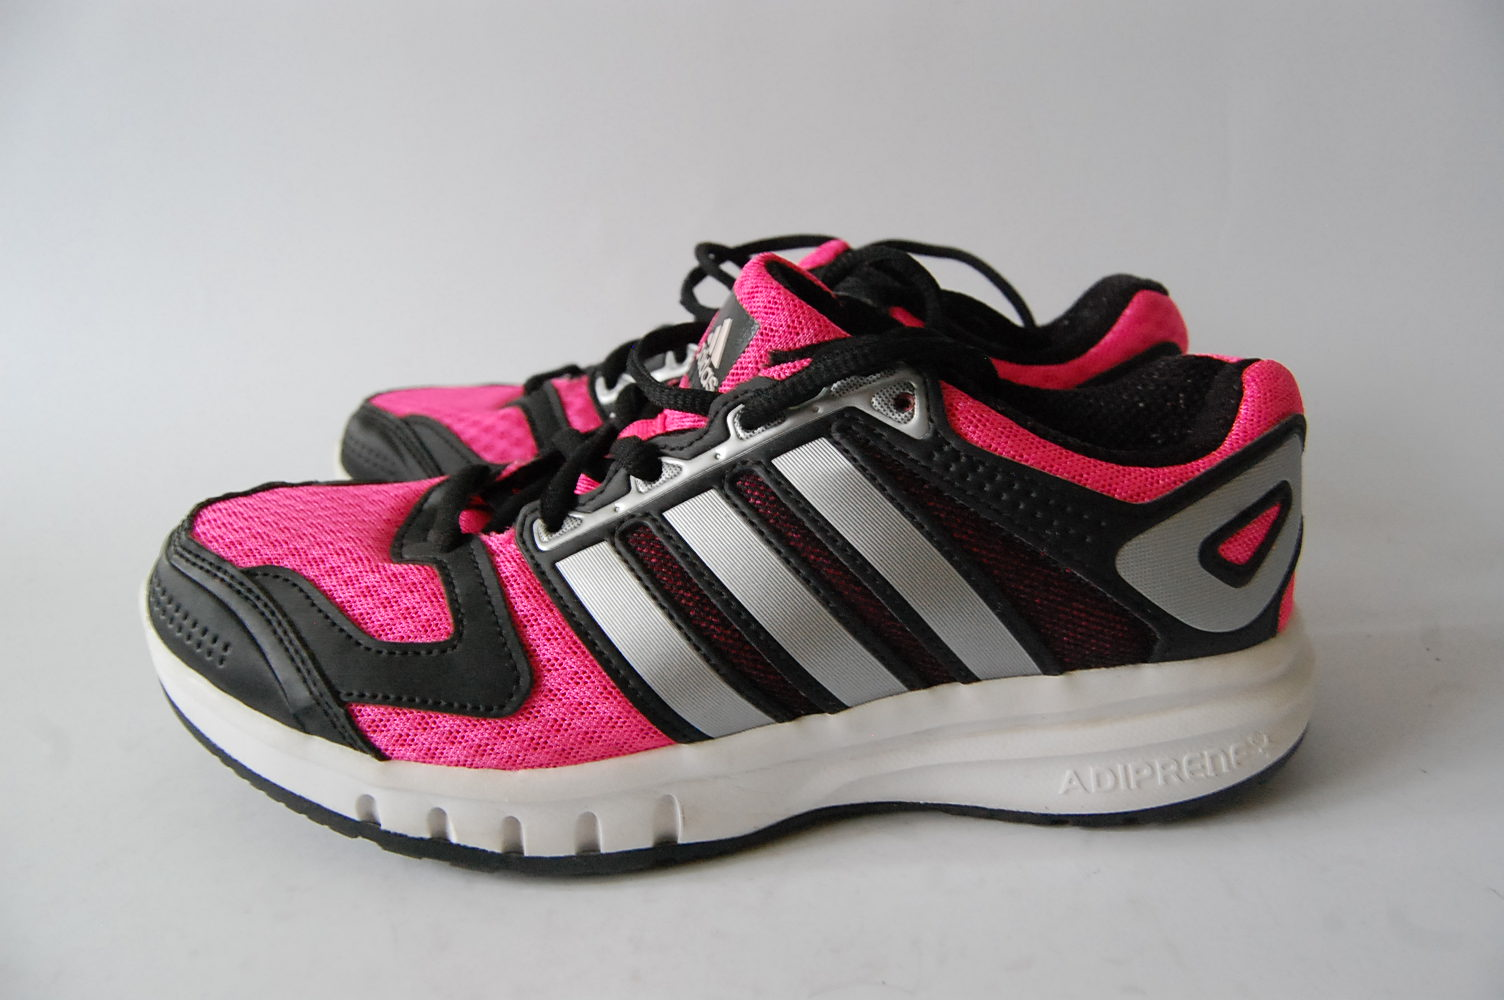 buy popular 00e93 6730b Buty ADIDAS , EU 37 UK 4,5 P.NOWE (7490759933)